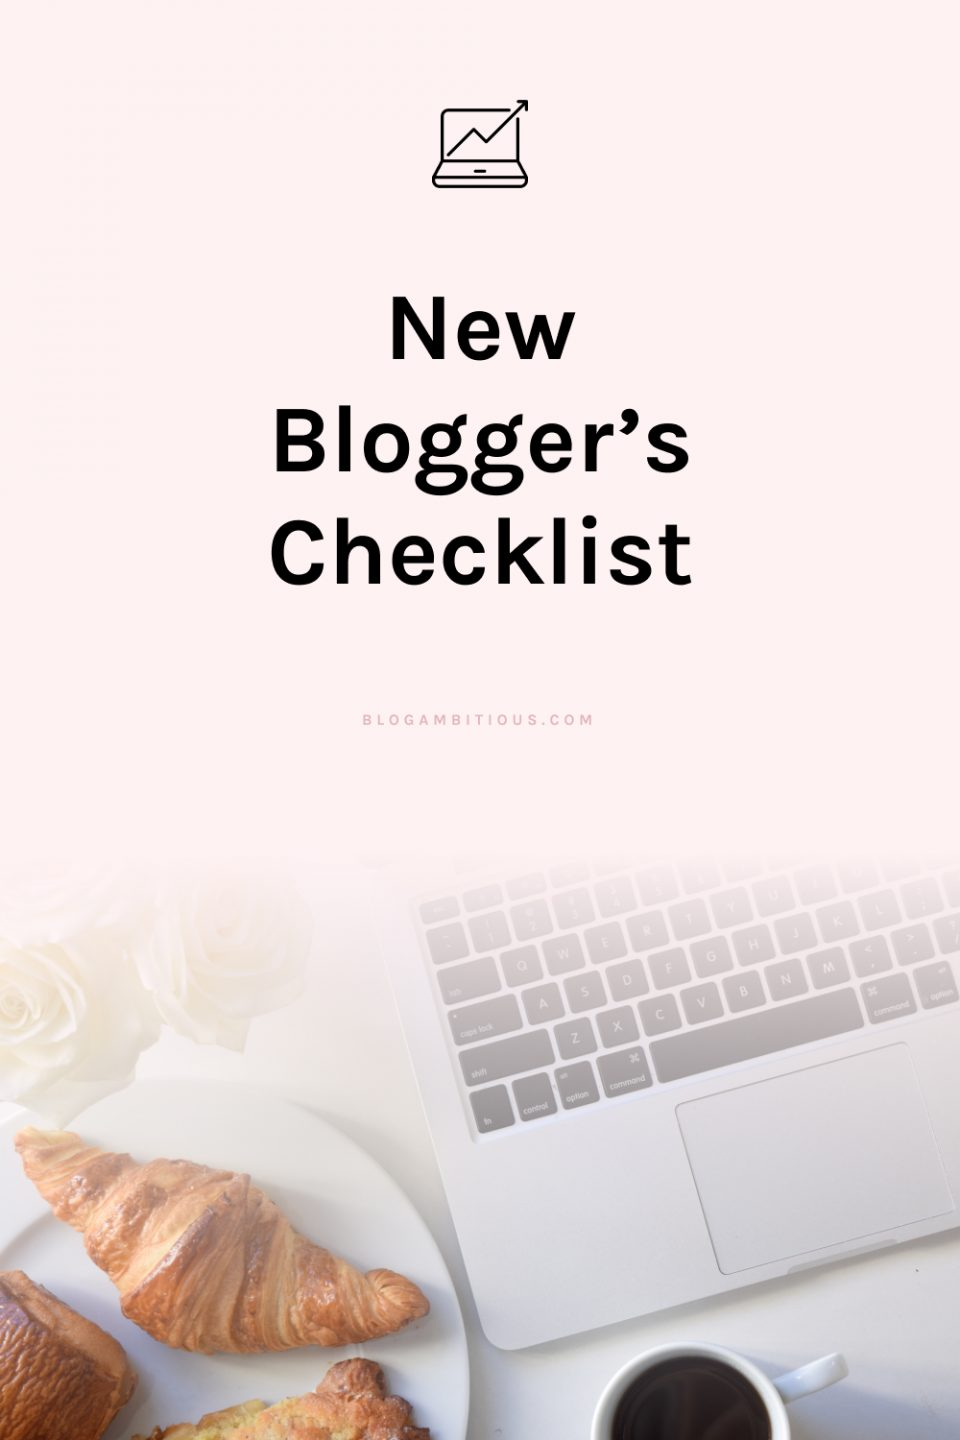 The New Blogger's Checklist: 28 Tasks to set your blog up for success!